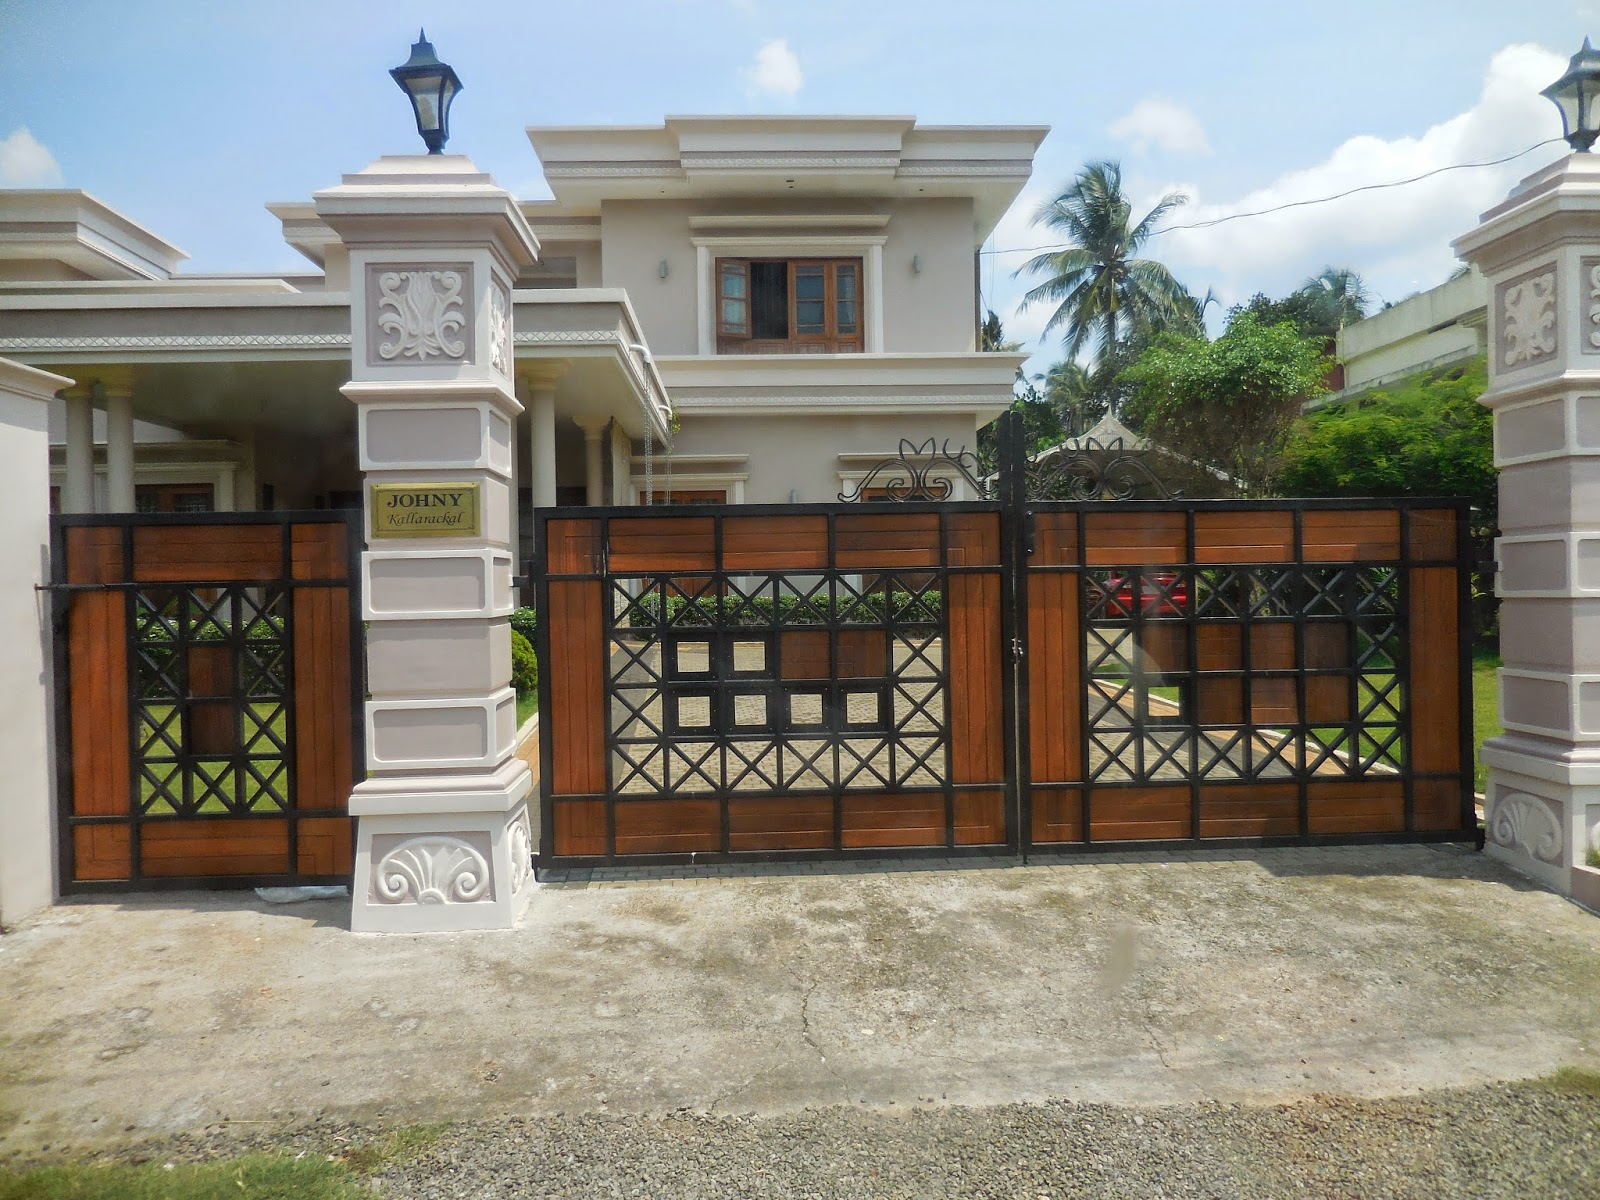 kerala gate designs a beautiful house gate from kerala kerala gate ...